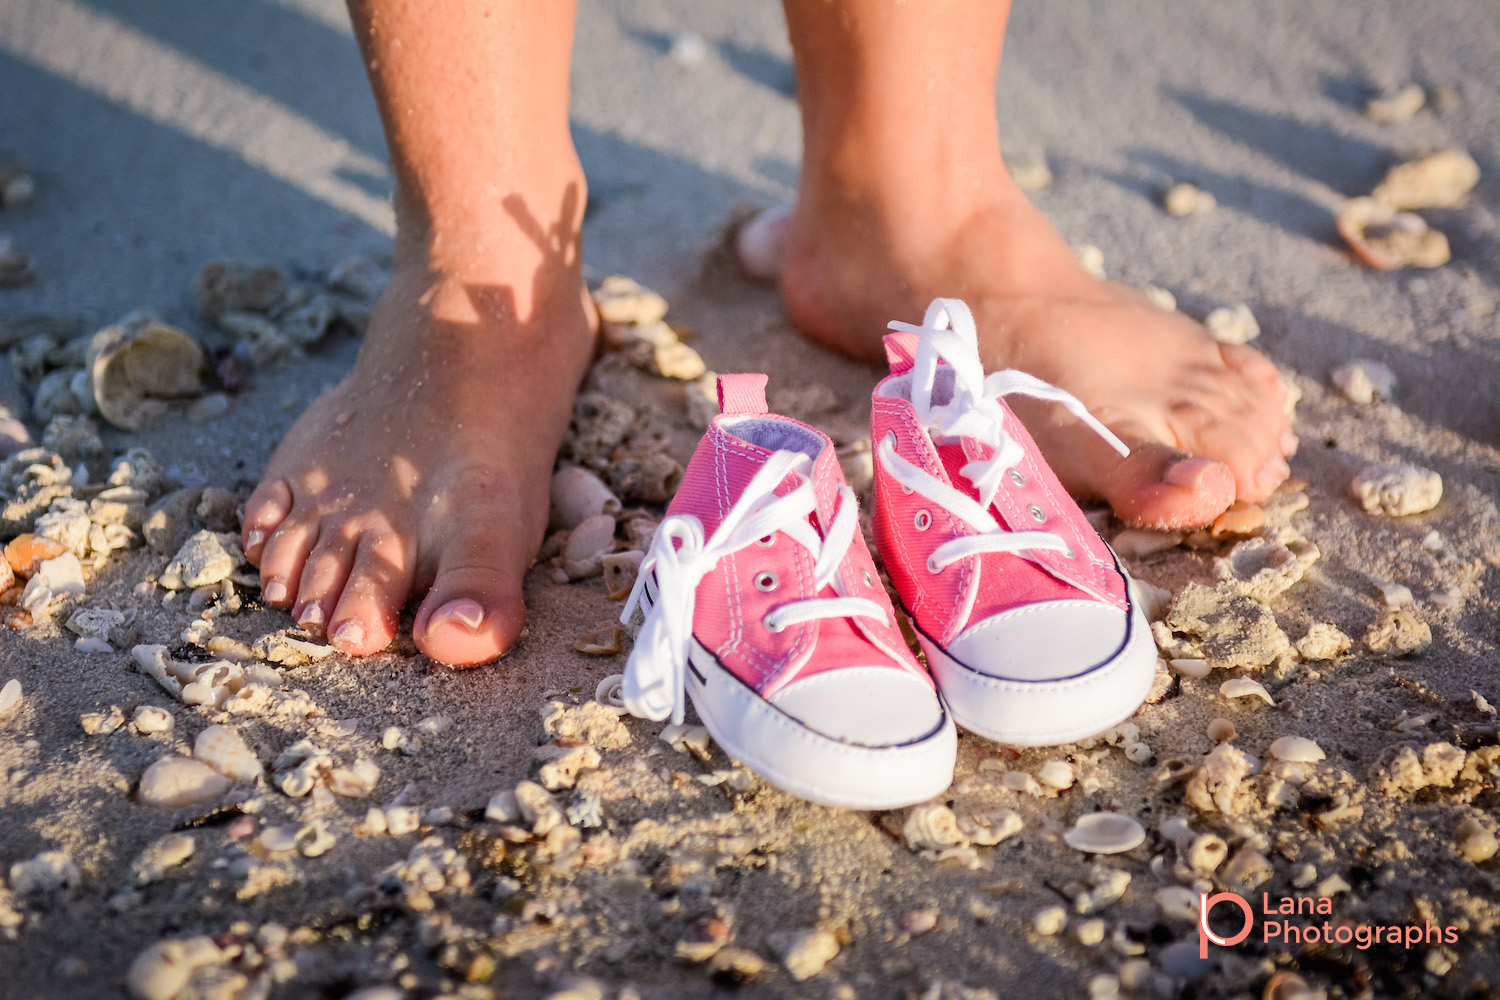 Dubai Maternity Photographer picture of mother's feet posing with her baby's shoes